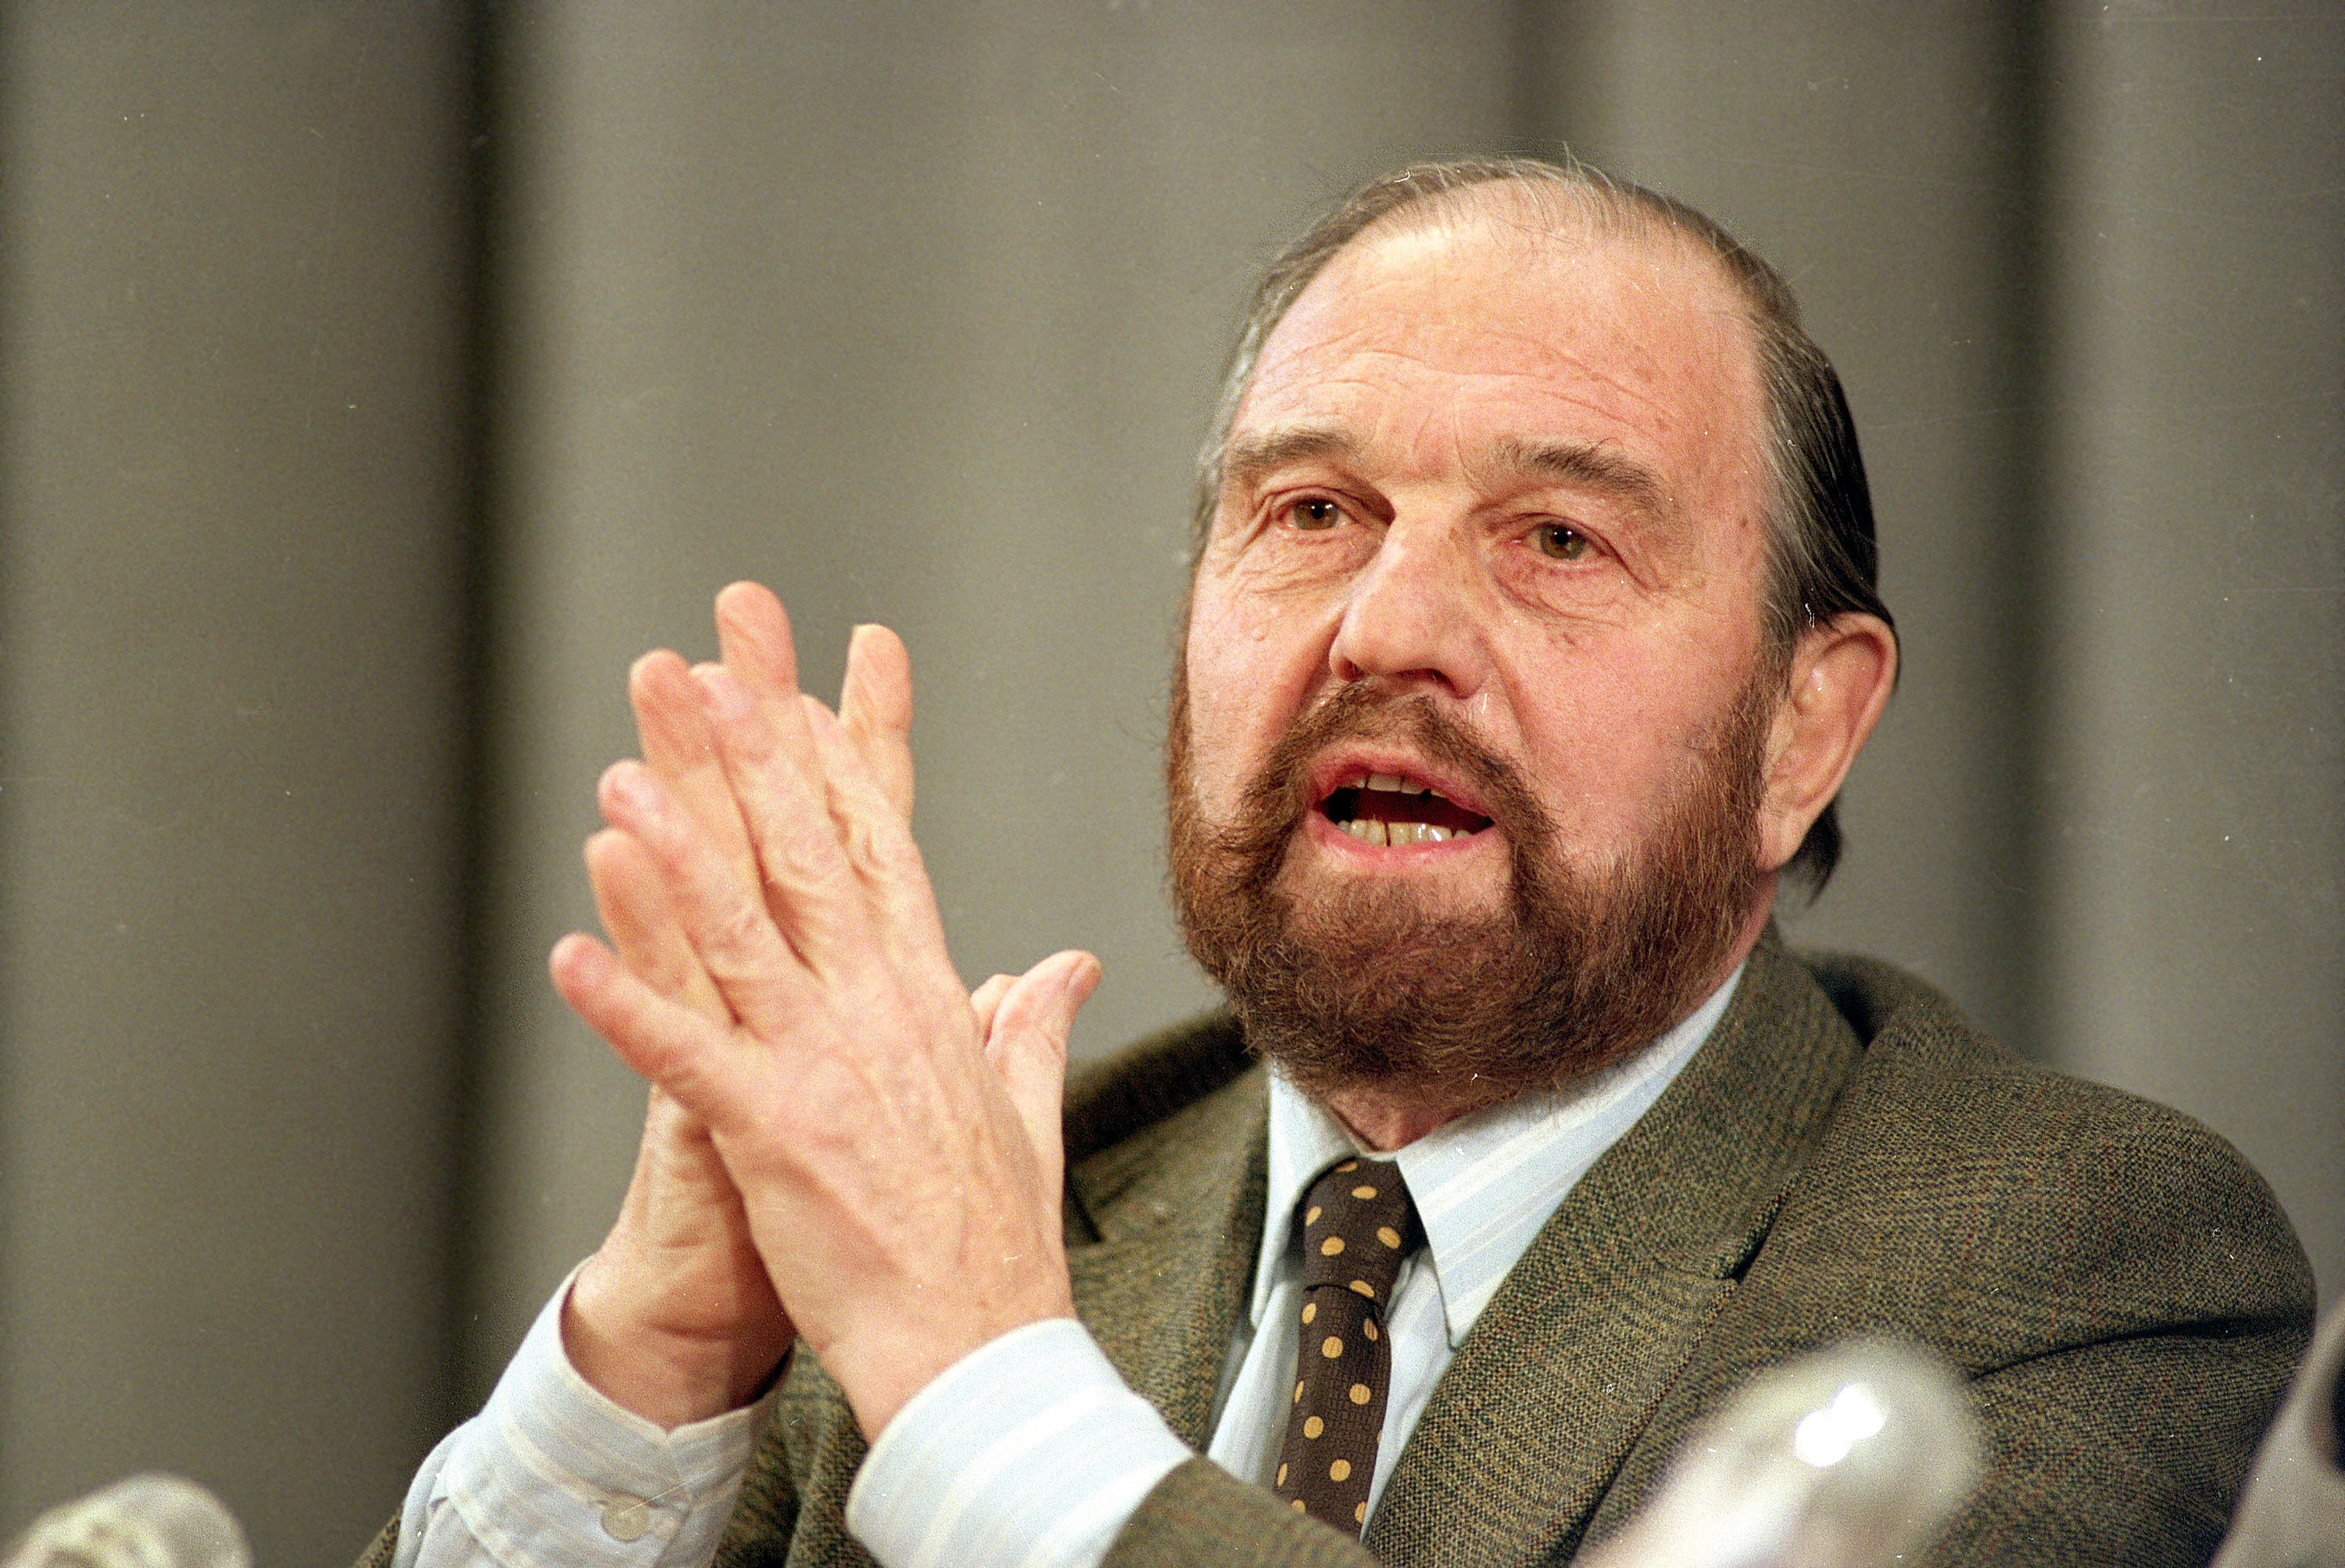 George Blake, a British defector who spied for the Soviets in Britain, gestures during a news conference in Moscow, Jan. 15, 1992